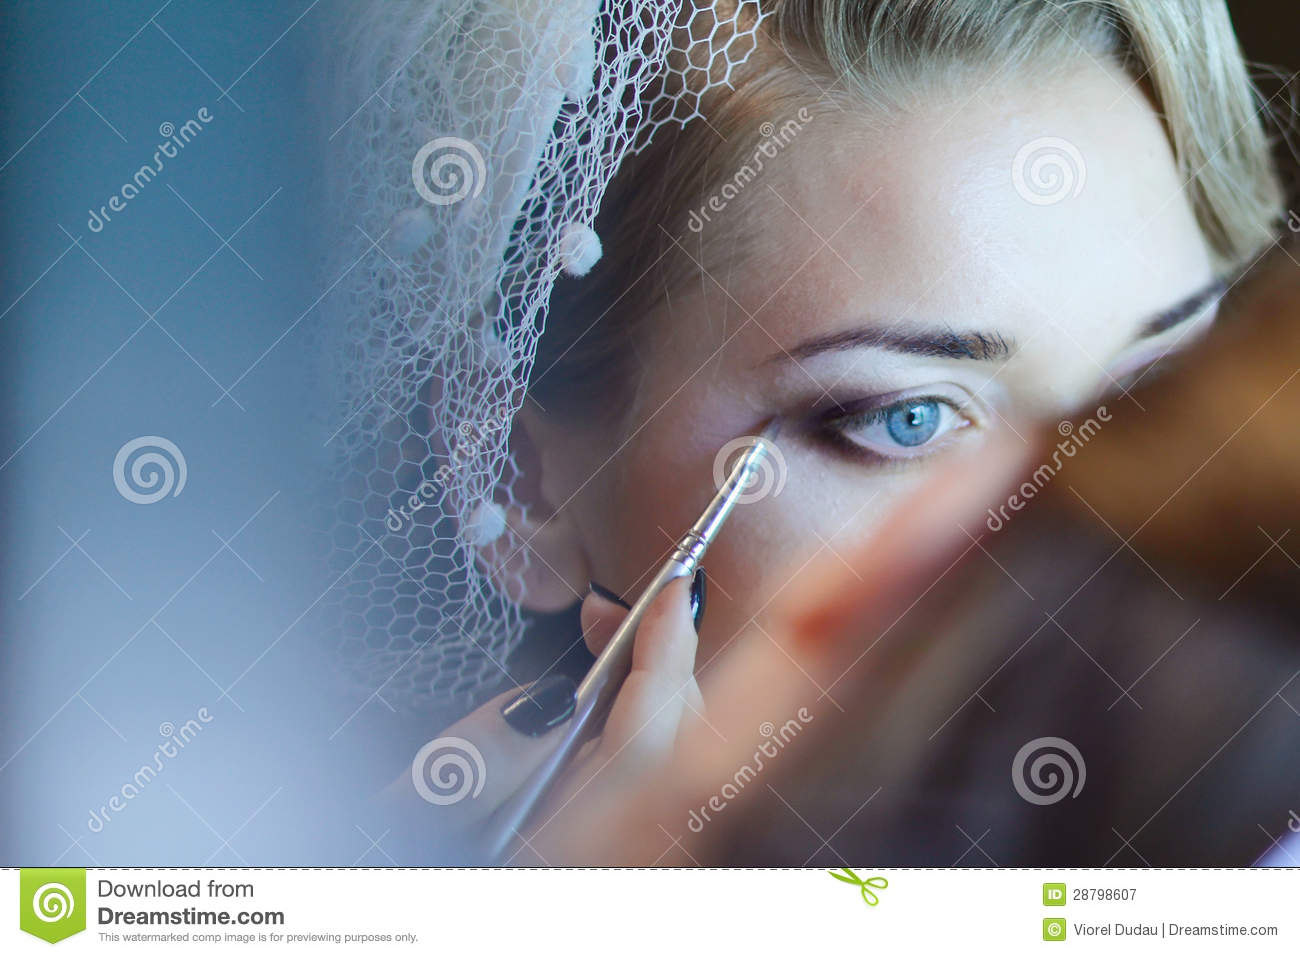 Stock Photo Royalty Free Wedding makeup Royalty Free